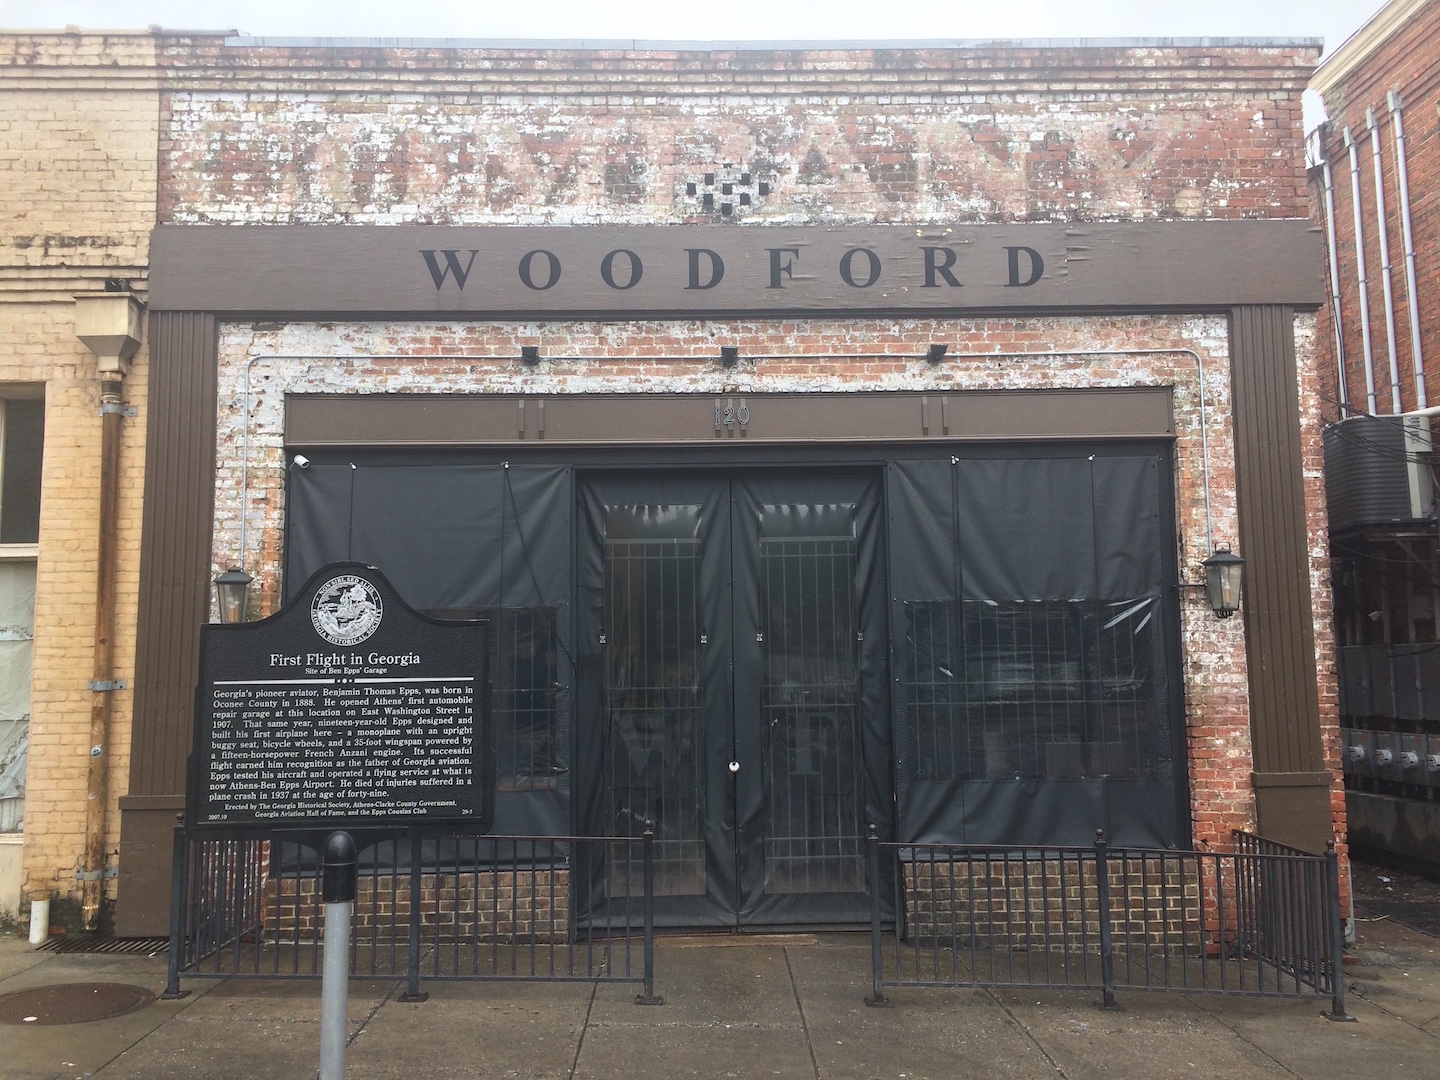 Westernmost portion of Epps' garage on East Washington Street, is now a bar named The Woodford